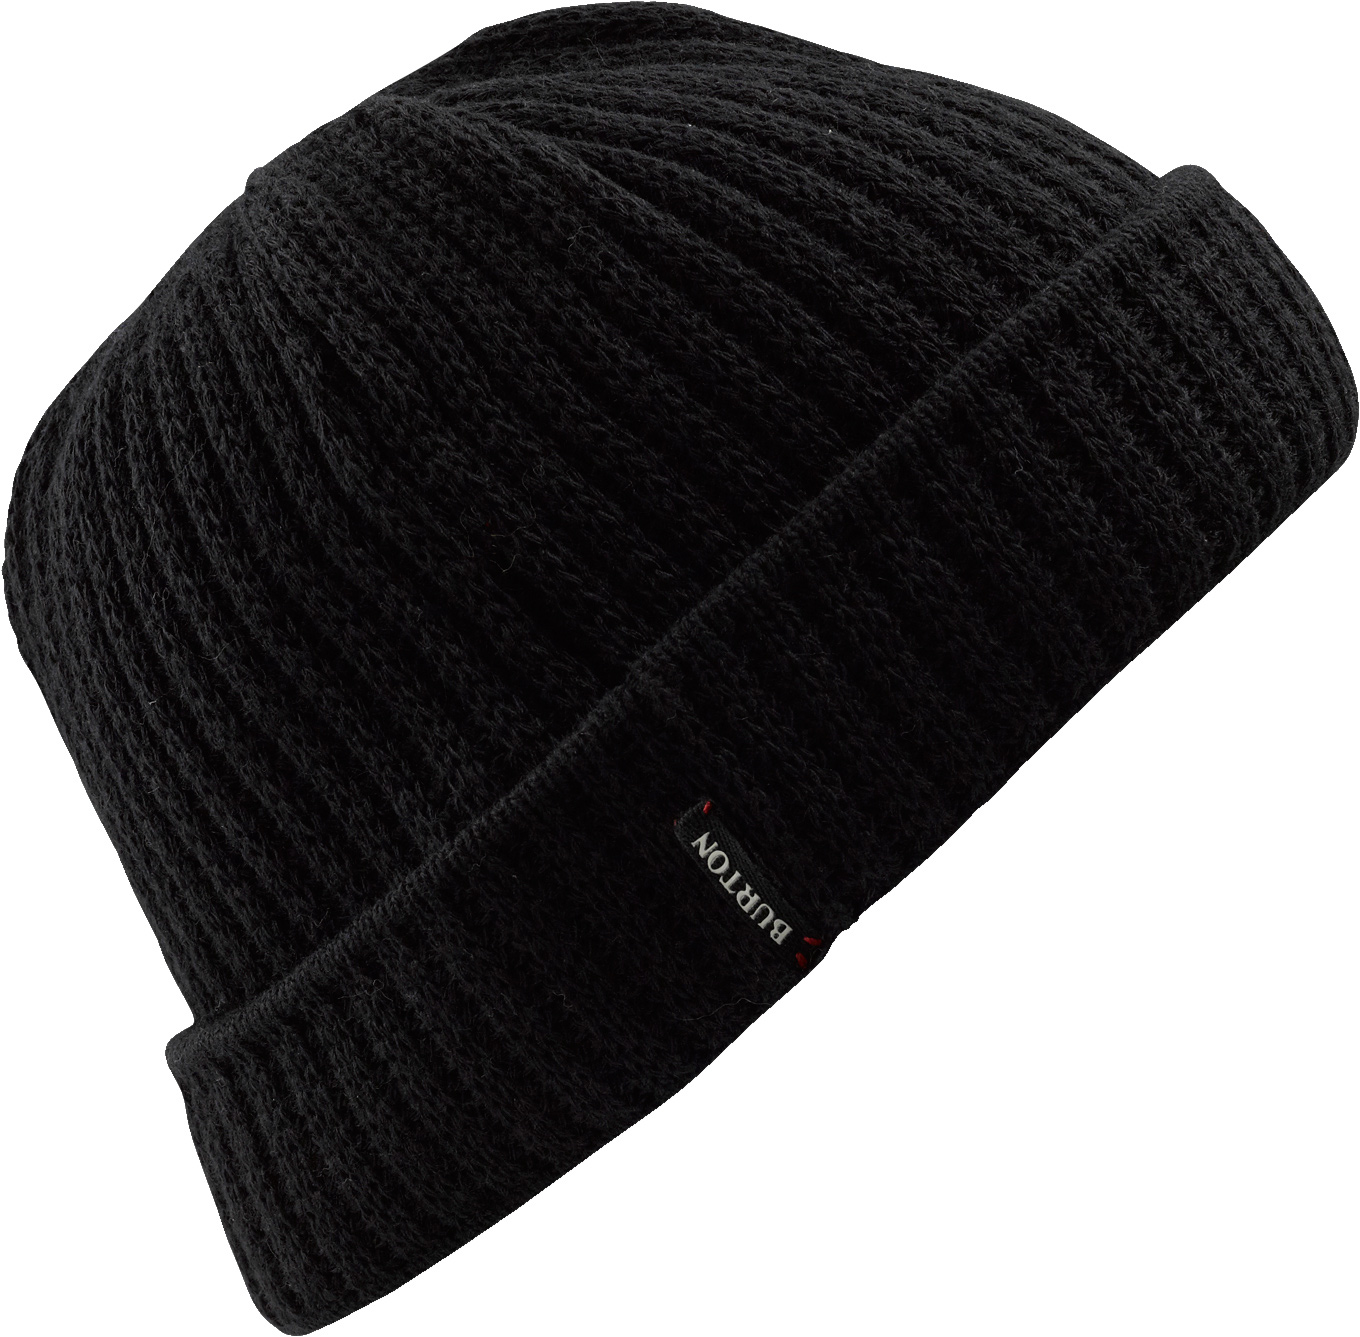 Snowboard Key Features of the Burton Cash Beanie: 100% Acrylic Fold Up with Skully Fit - $14.95